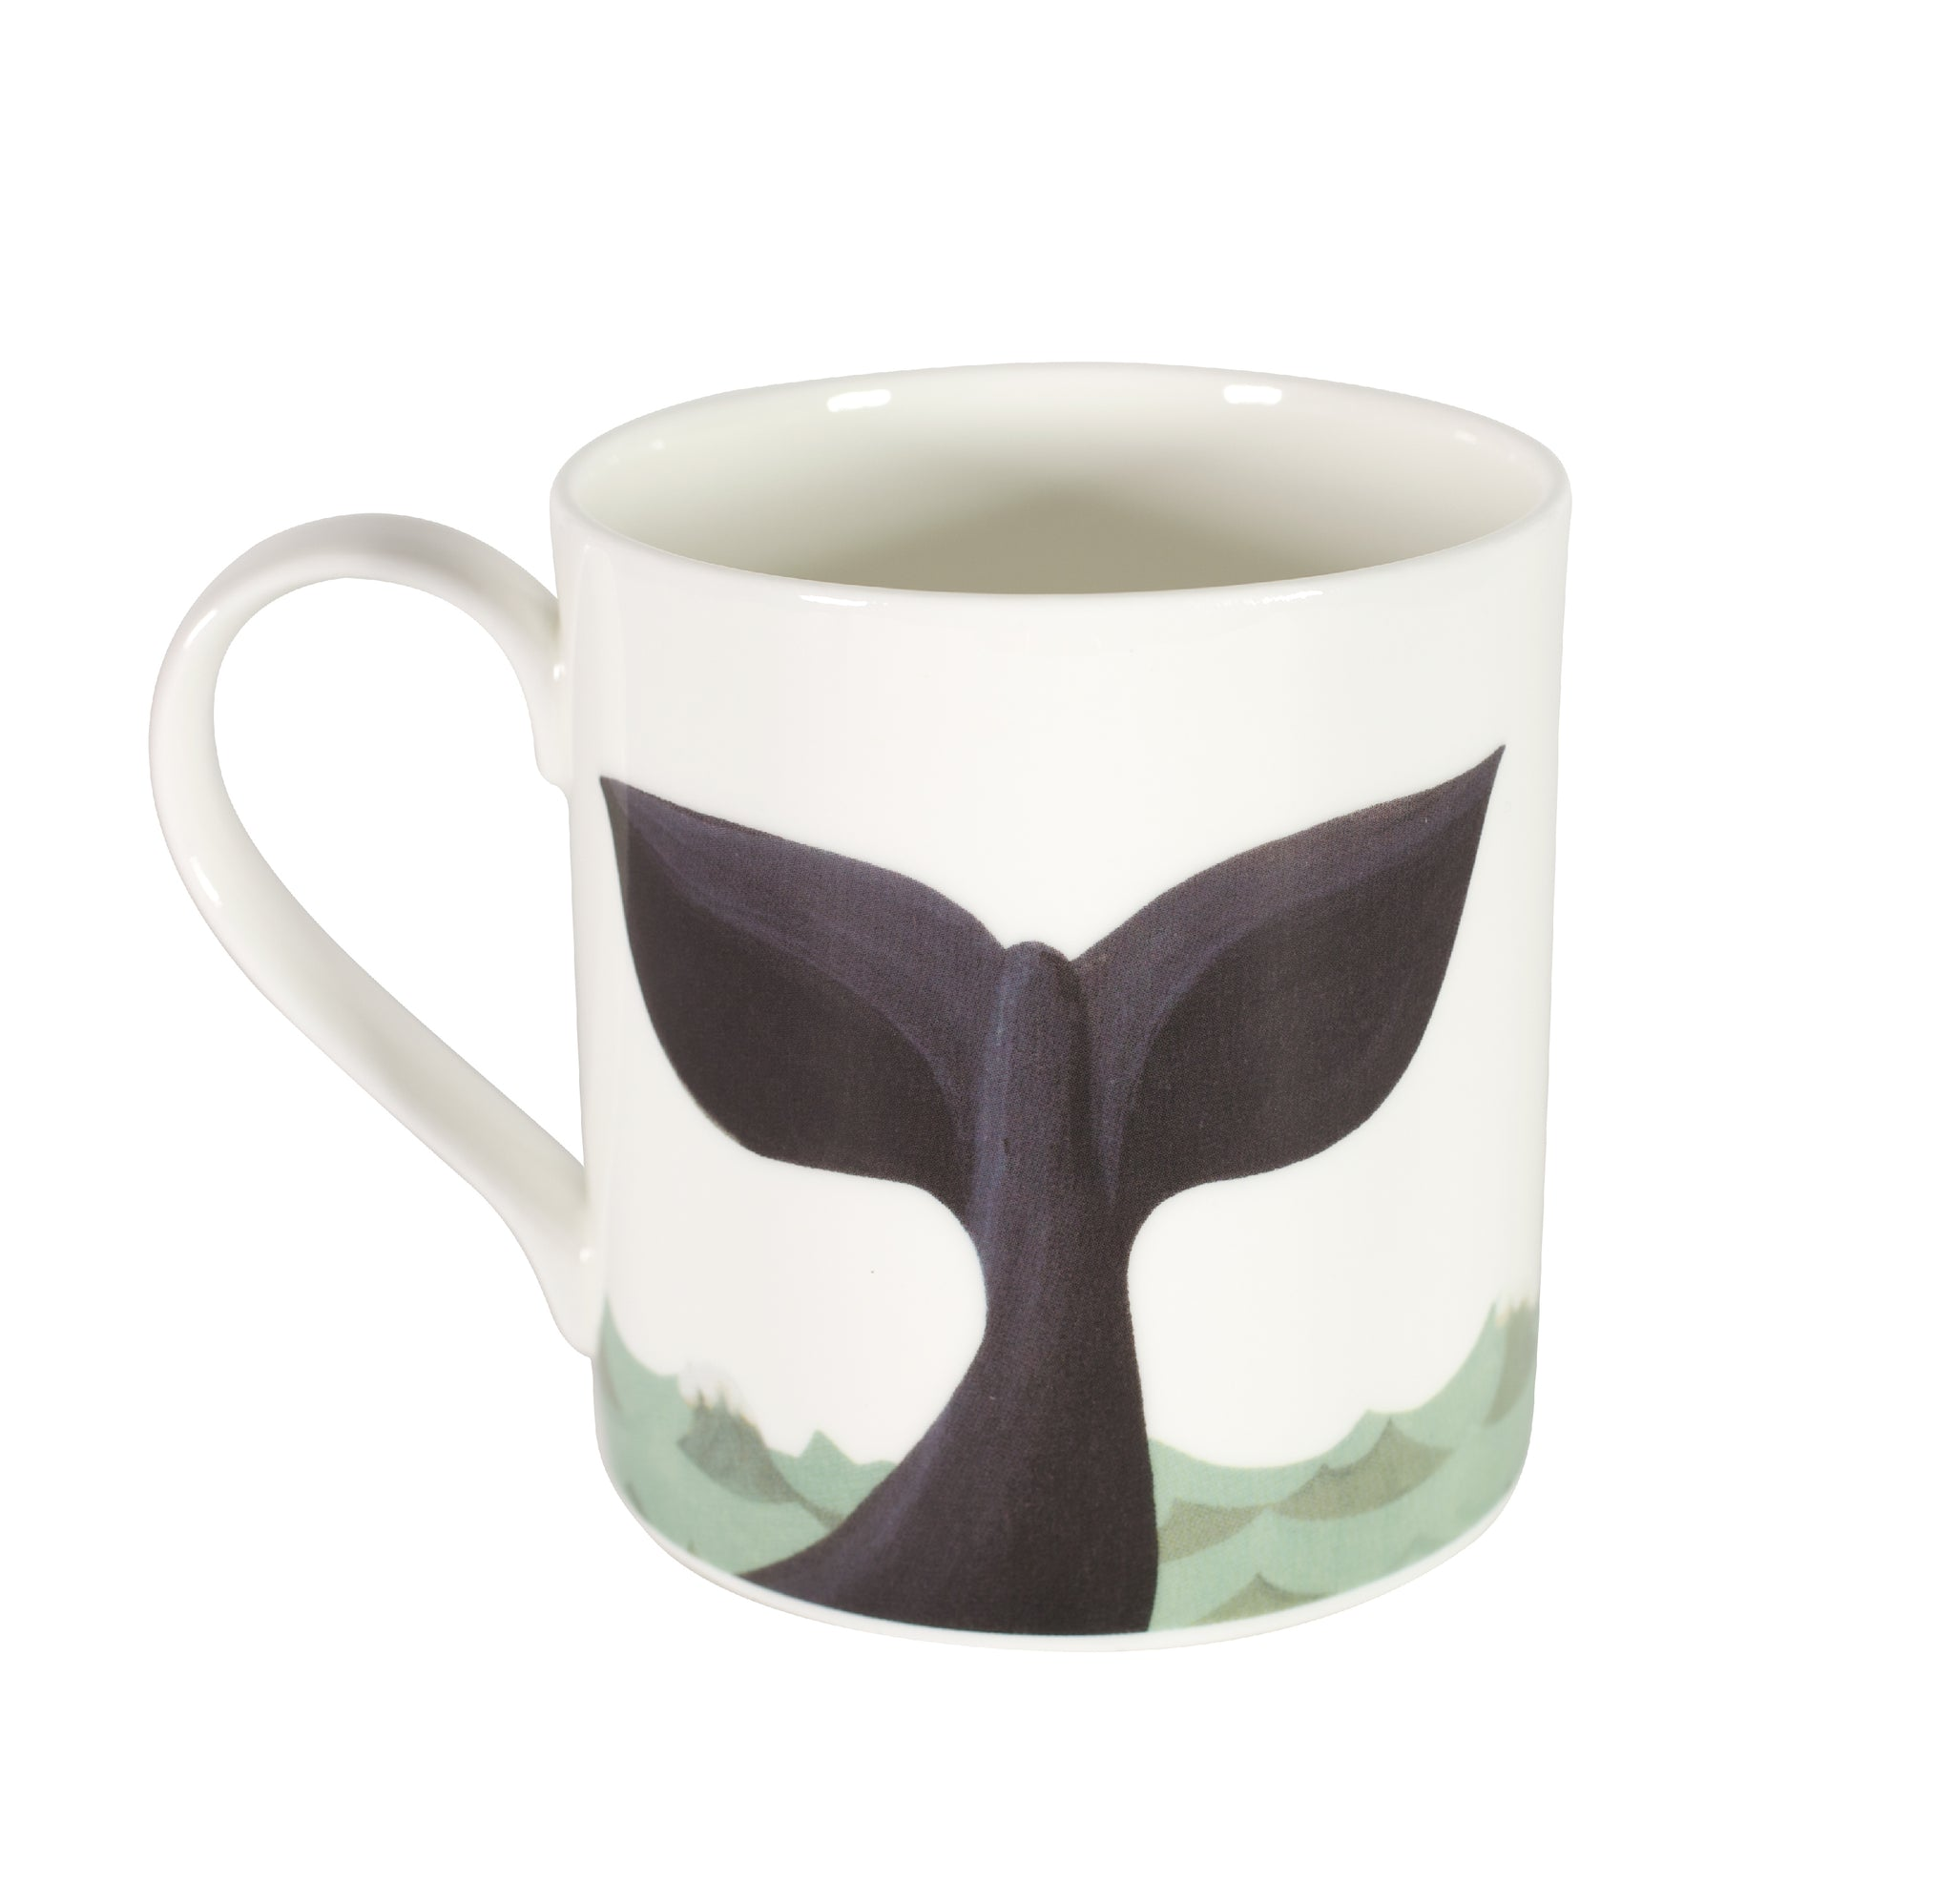 Two-sided fine bone china mug depicting a whale on one side and a whale's tail on the other side